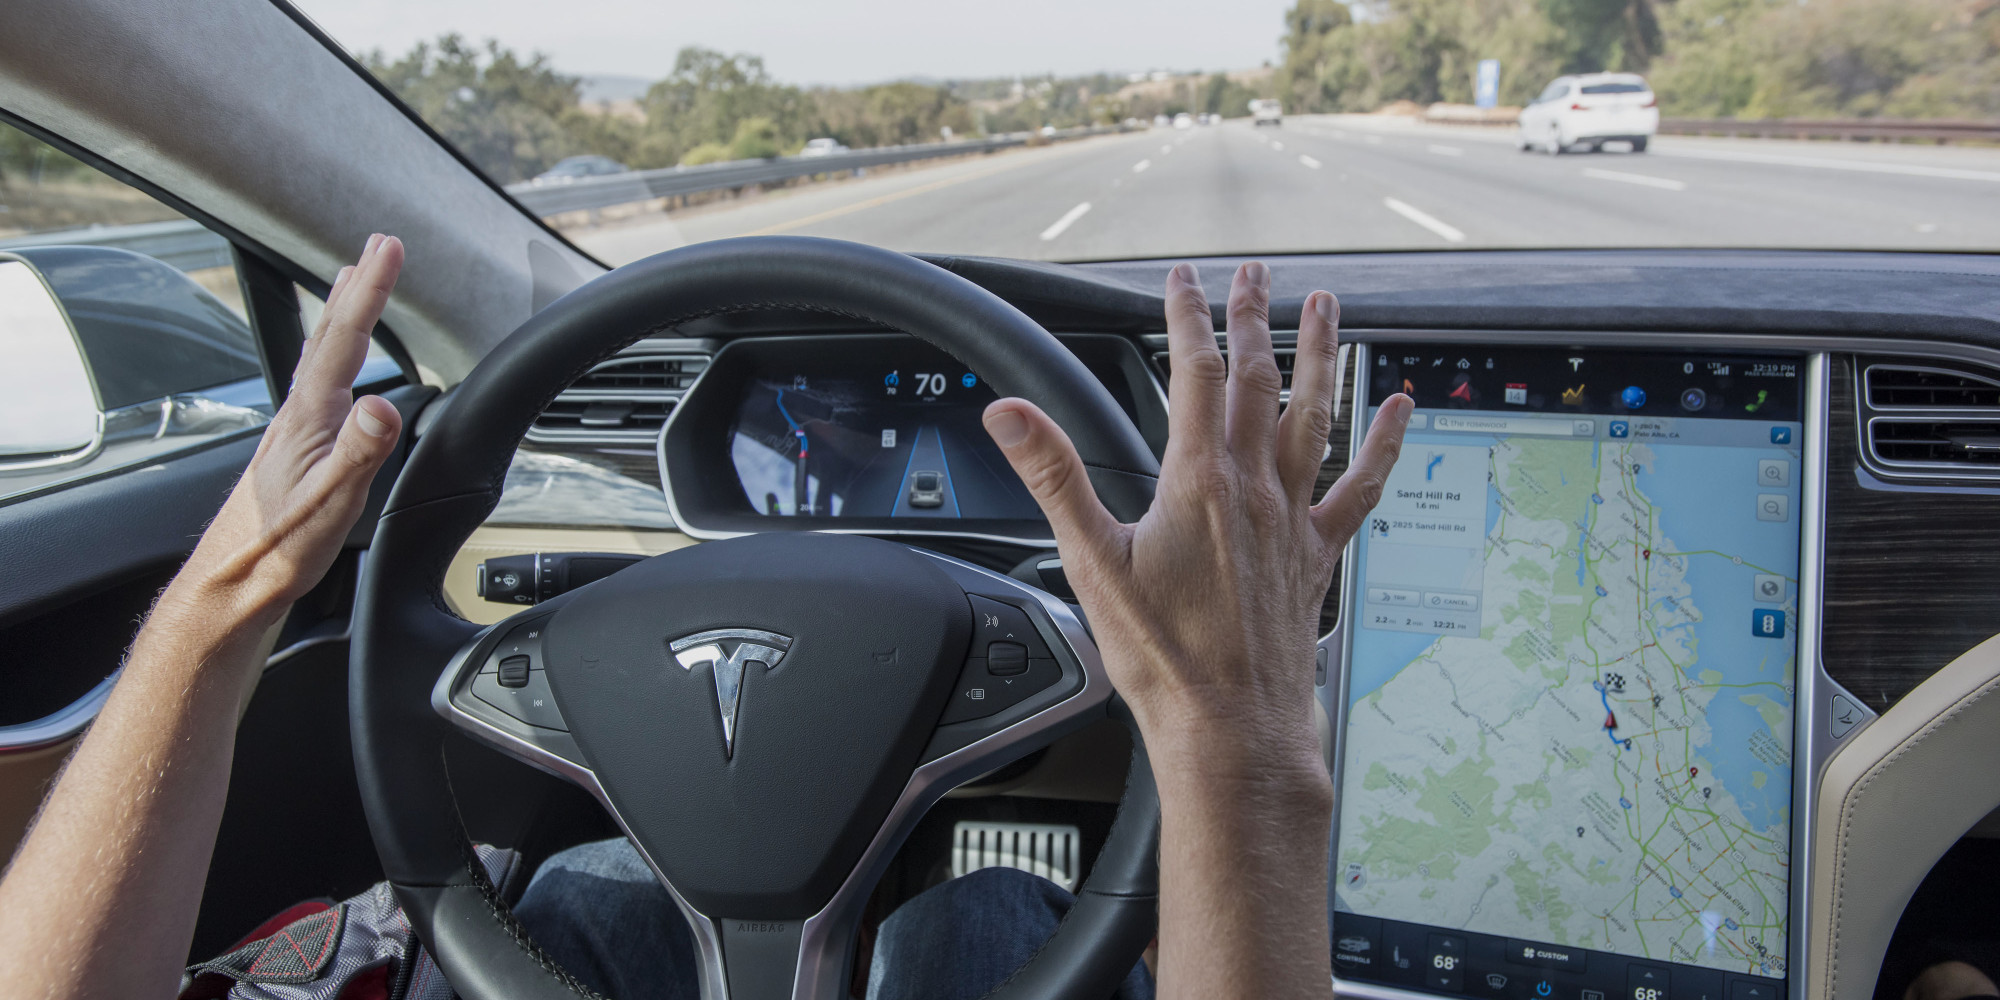 Another Tesla driver has crashed while (maybe) using Autopilot